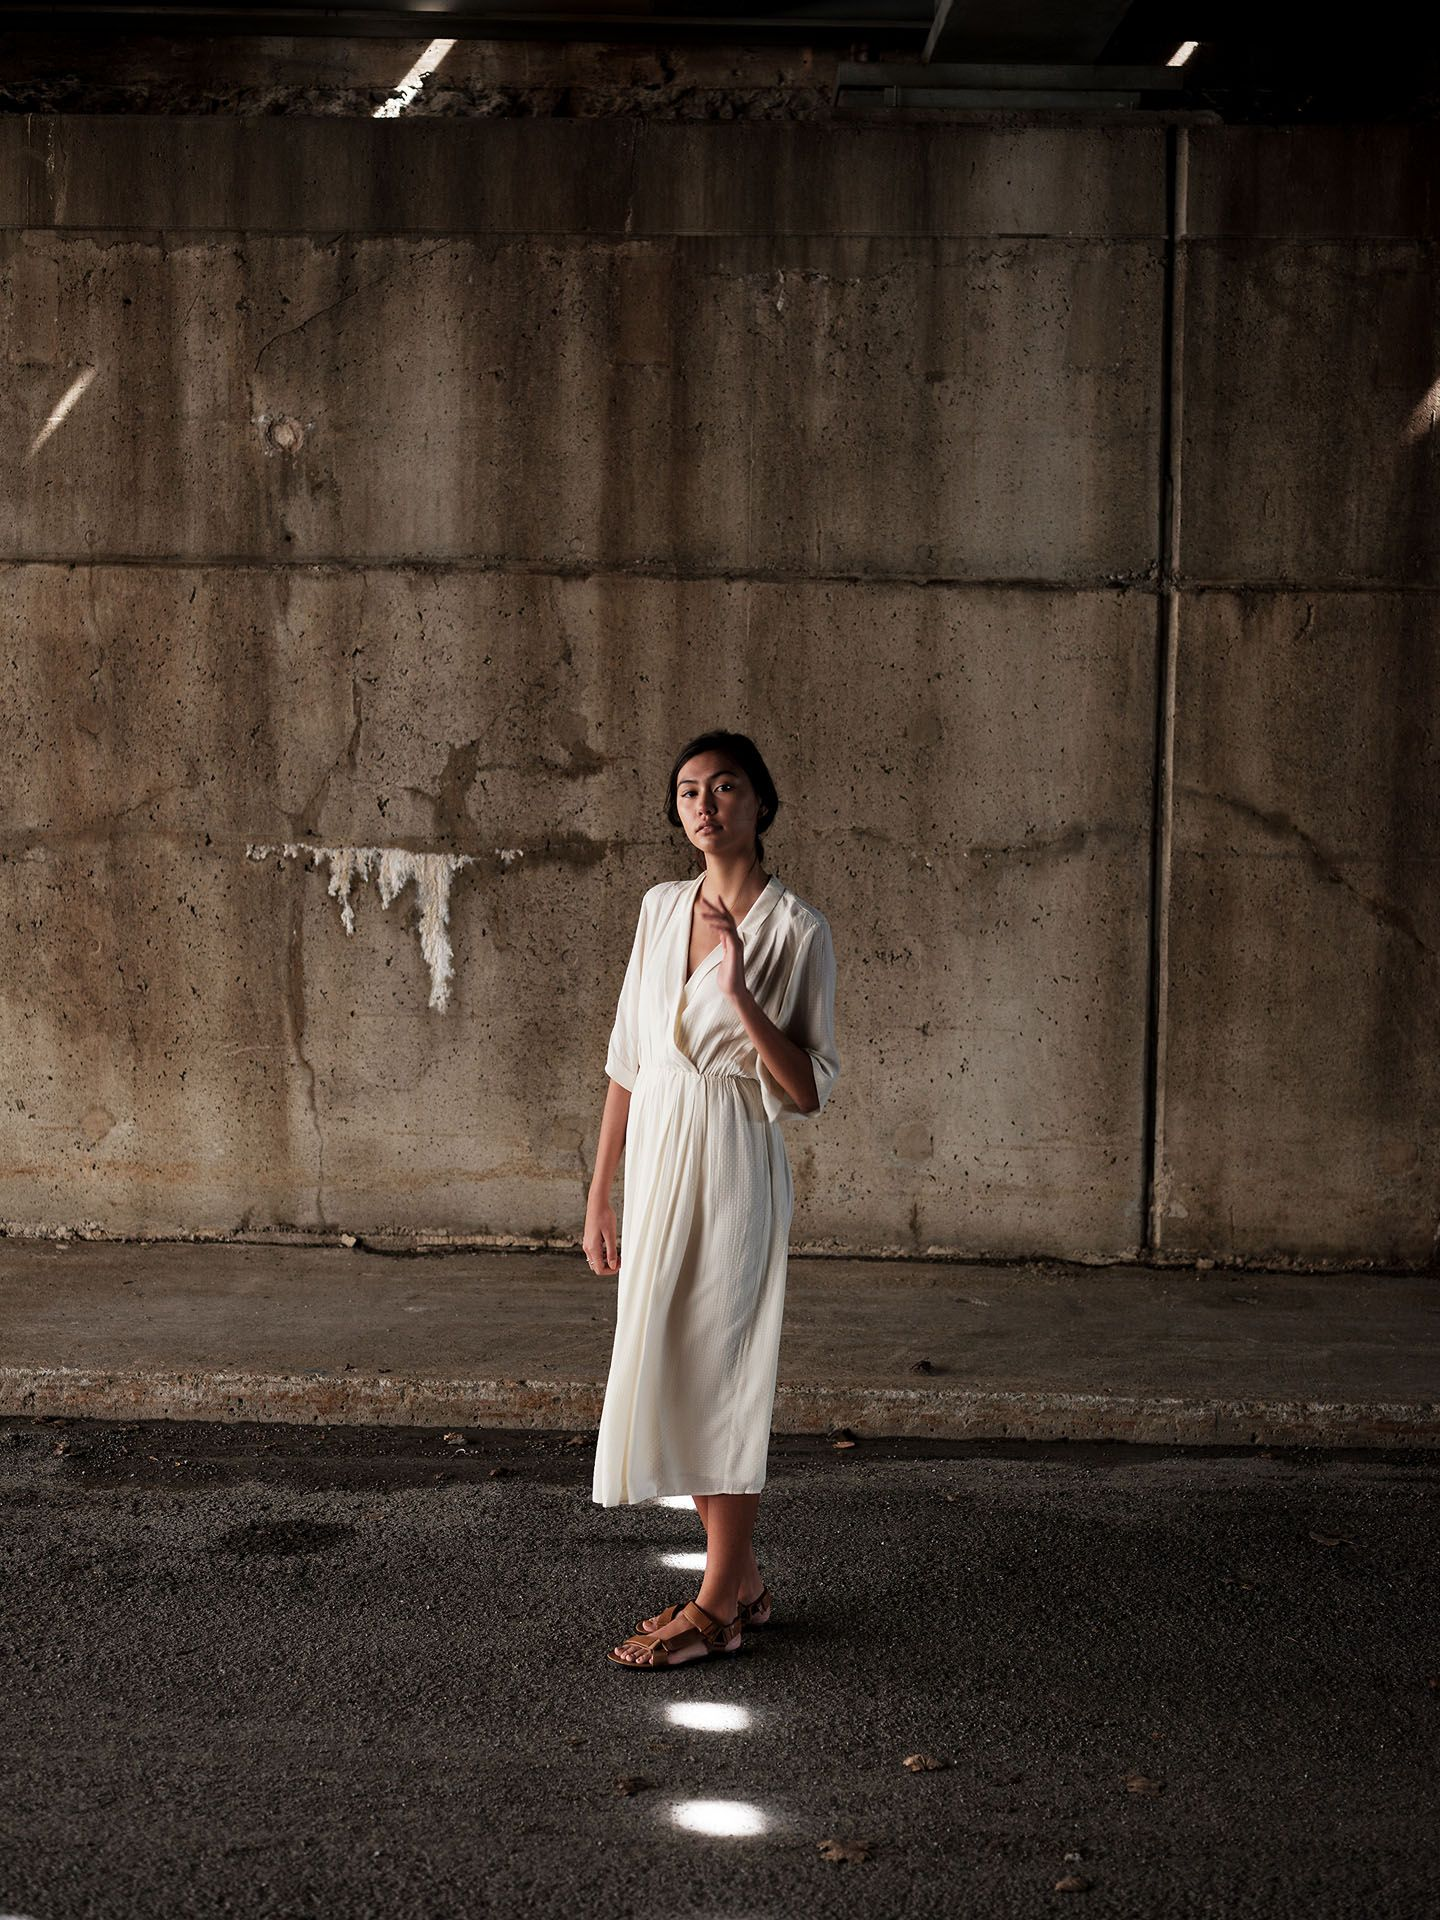 woman of colour modelling under concrete bridge walking on white painted dots on the ground wearing white flowy dress looking at camera softly by Guillaume Simoneau for Swell and Ginger SS19